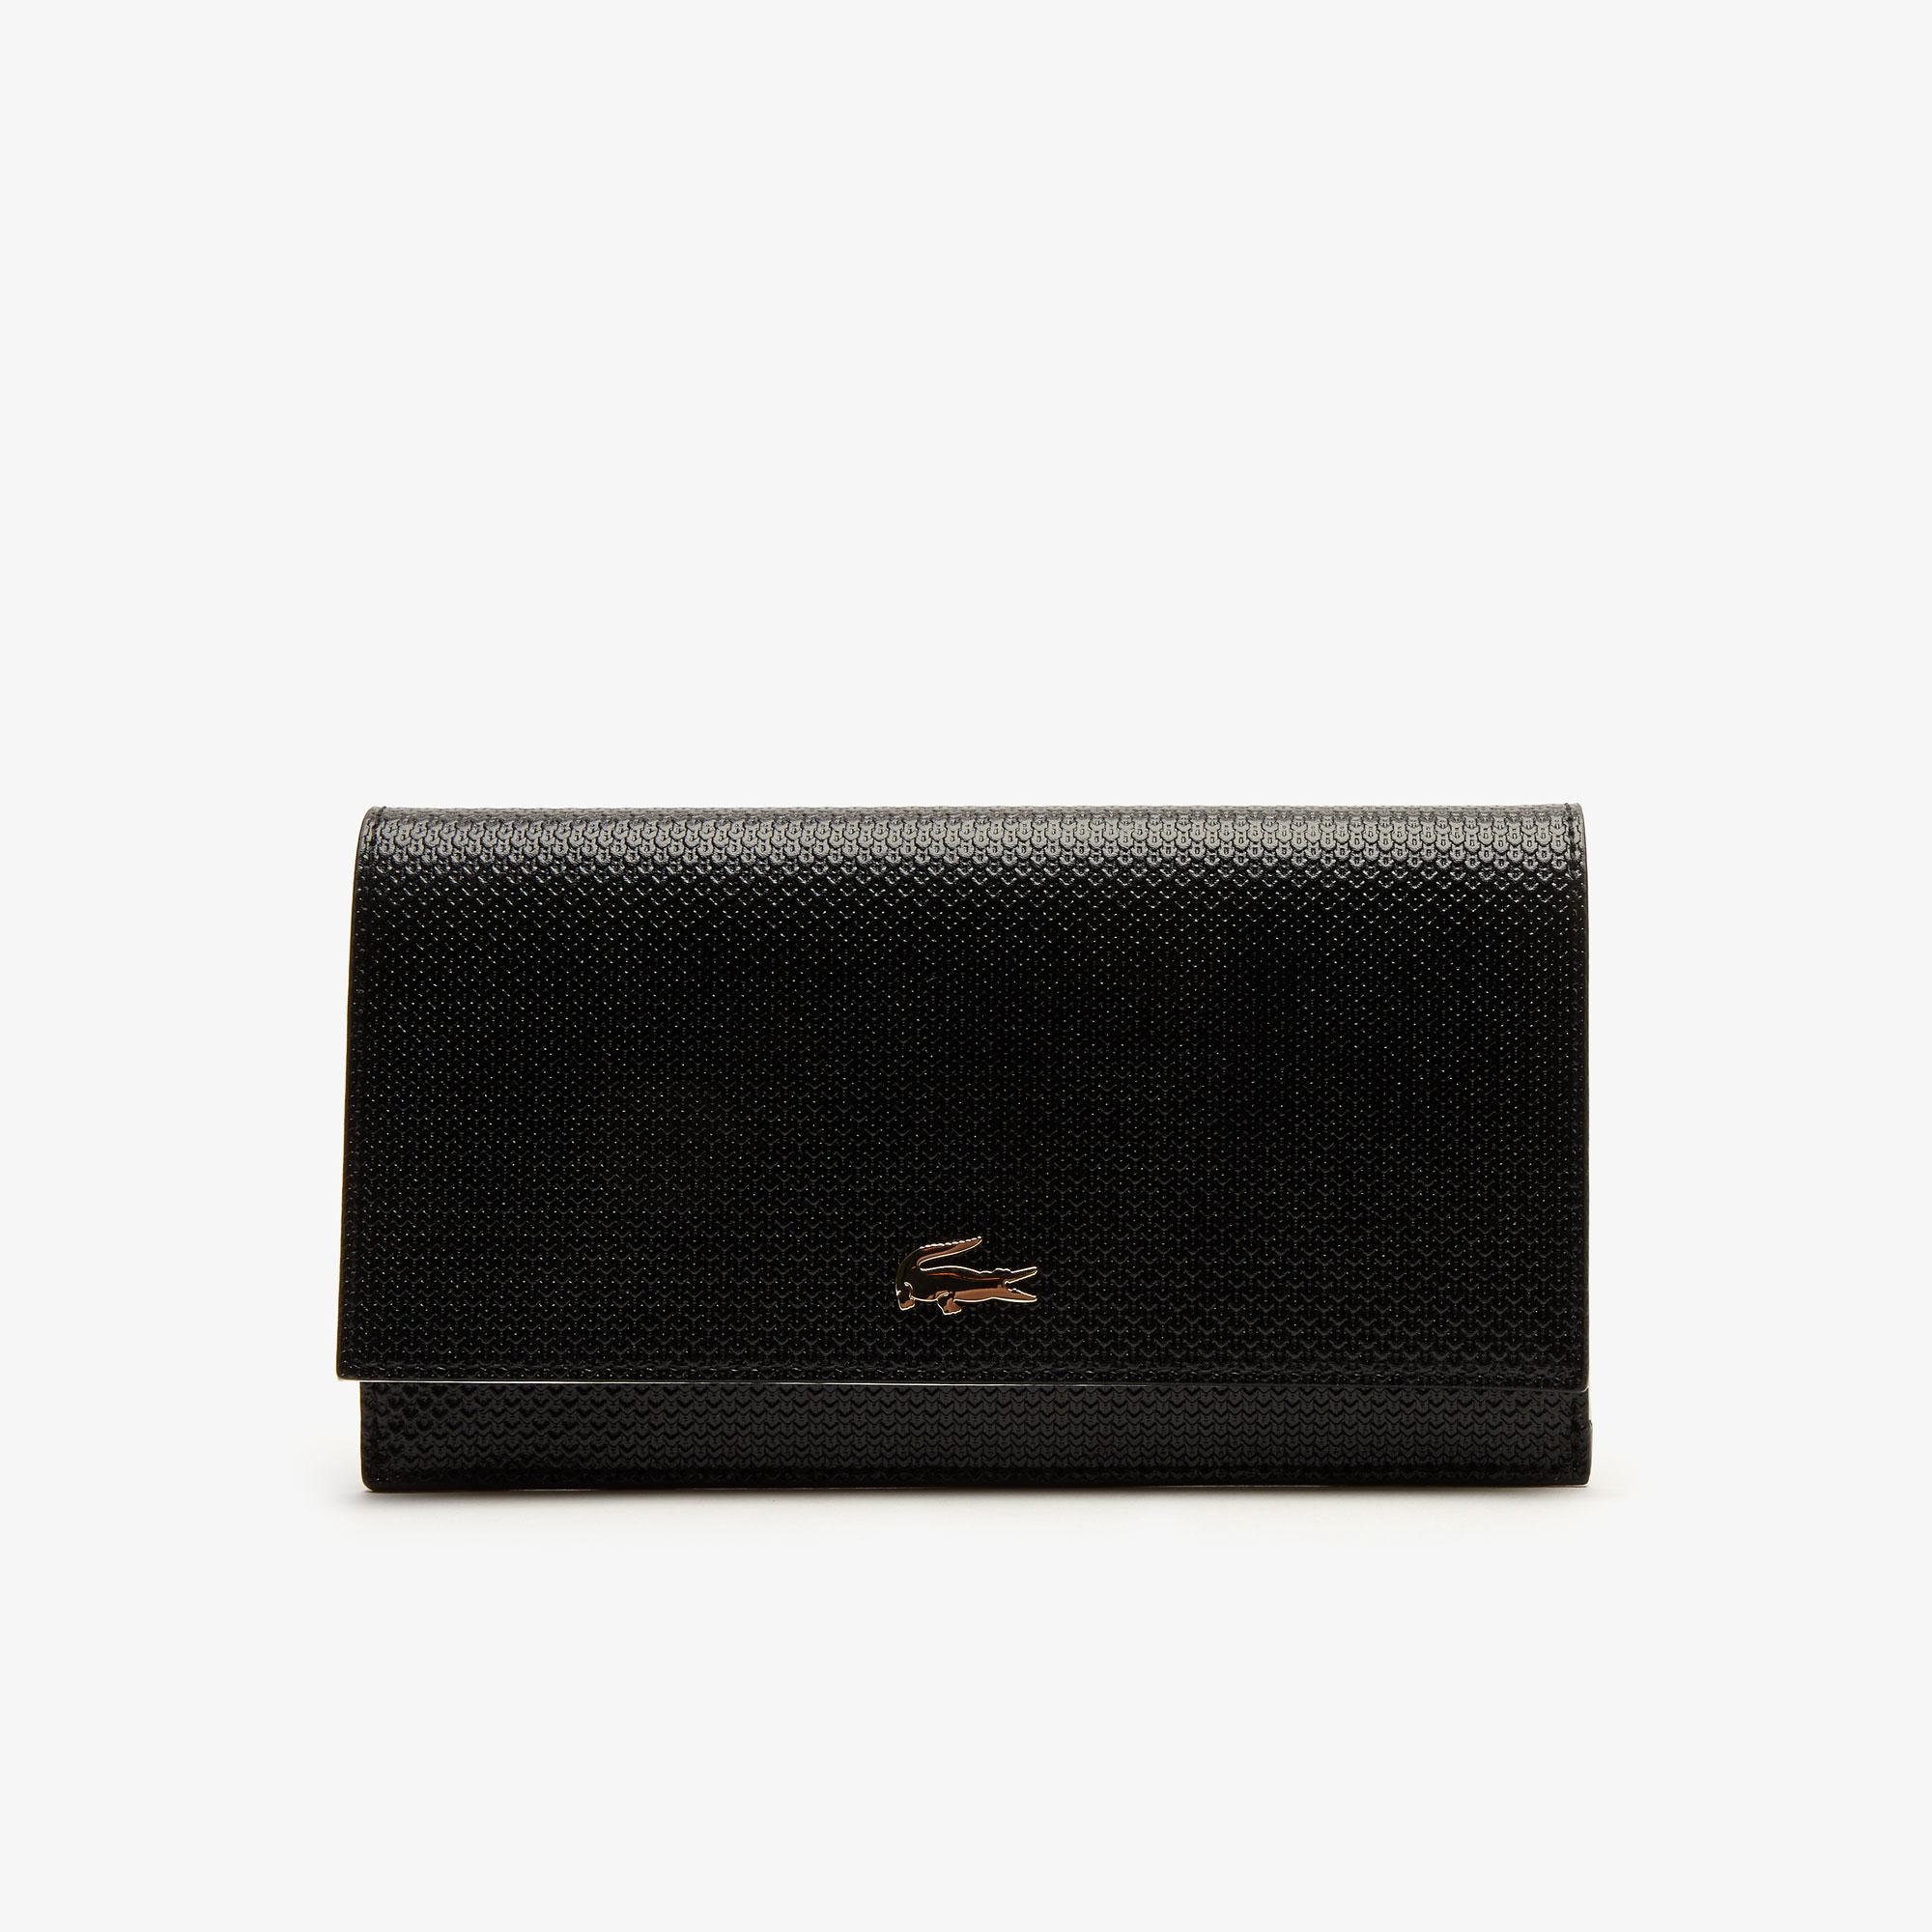 Lacoste Women's Chantaco Bicolour Piqué Leather 6 Card Wallet